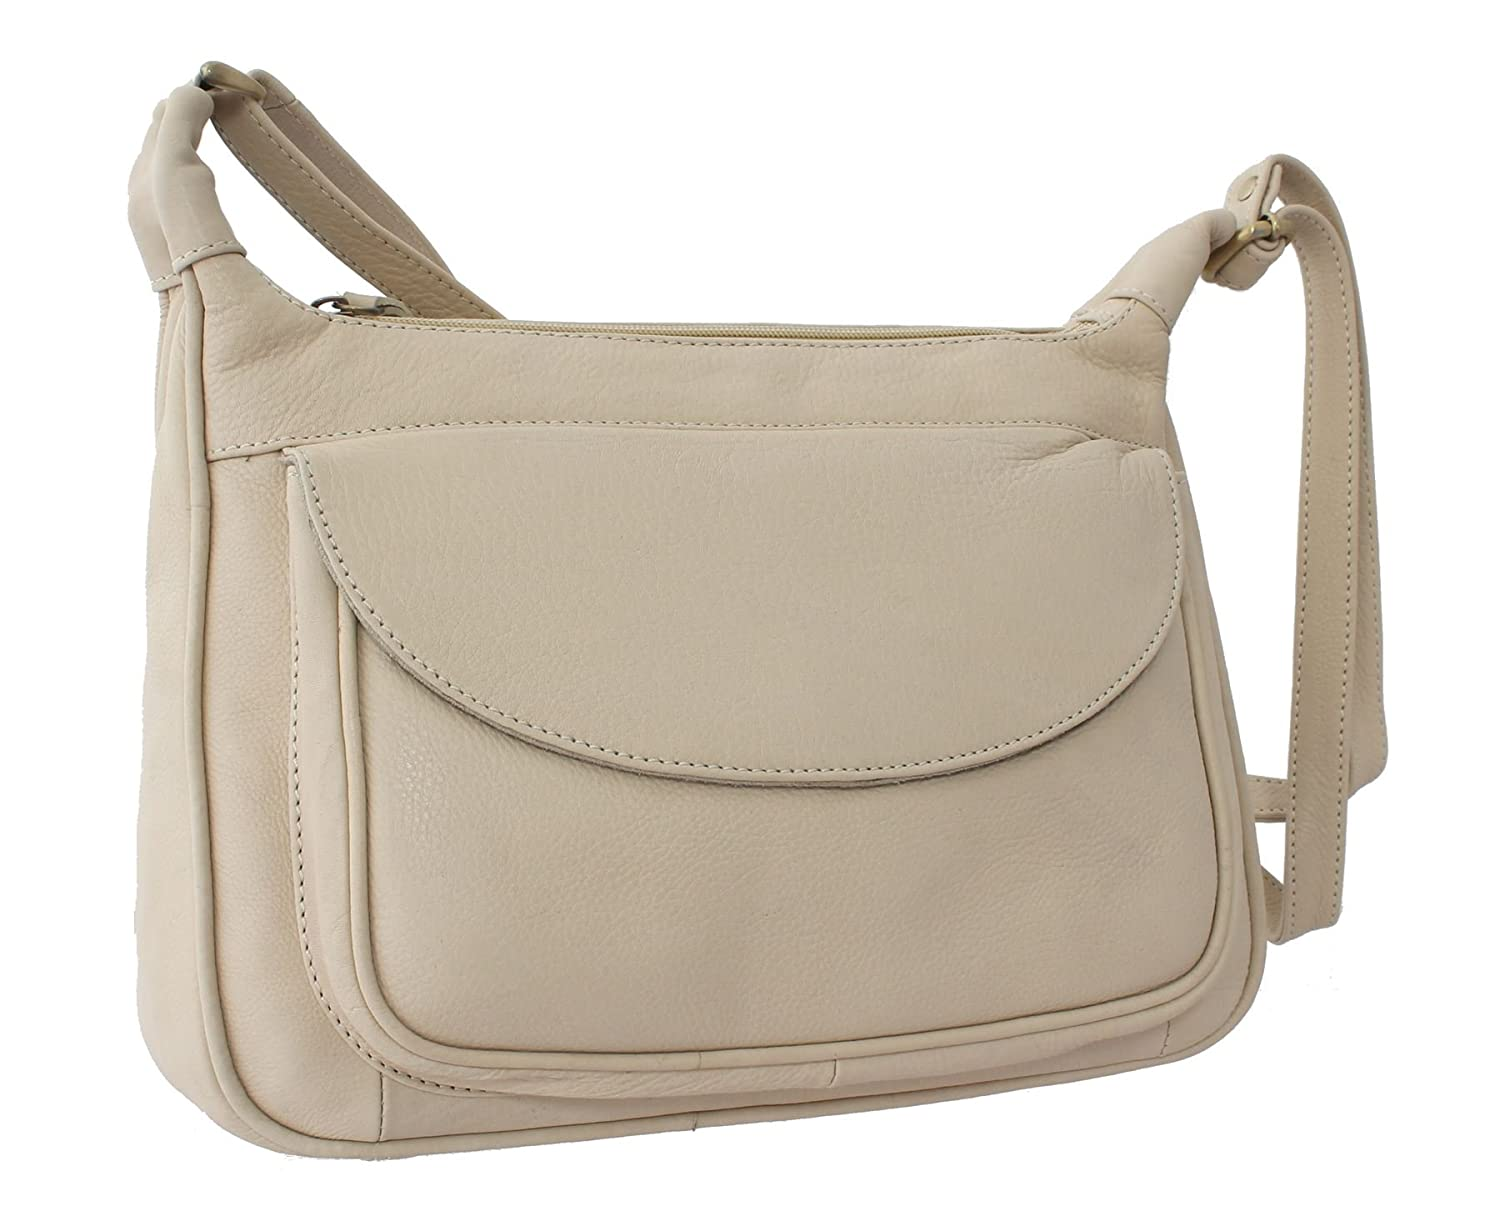 Bolla Bags Wimborne Collection PILFORD Single Strap Leather Shoulder Bag  Cream  Amazon.co.uk  Luggage 531435d97bd3a